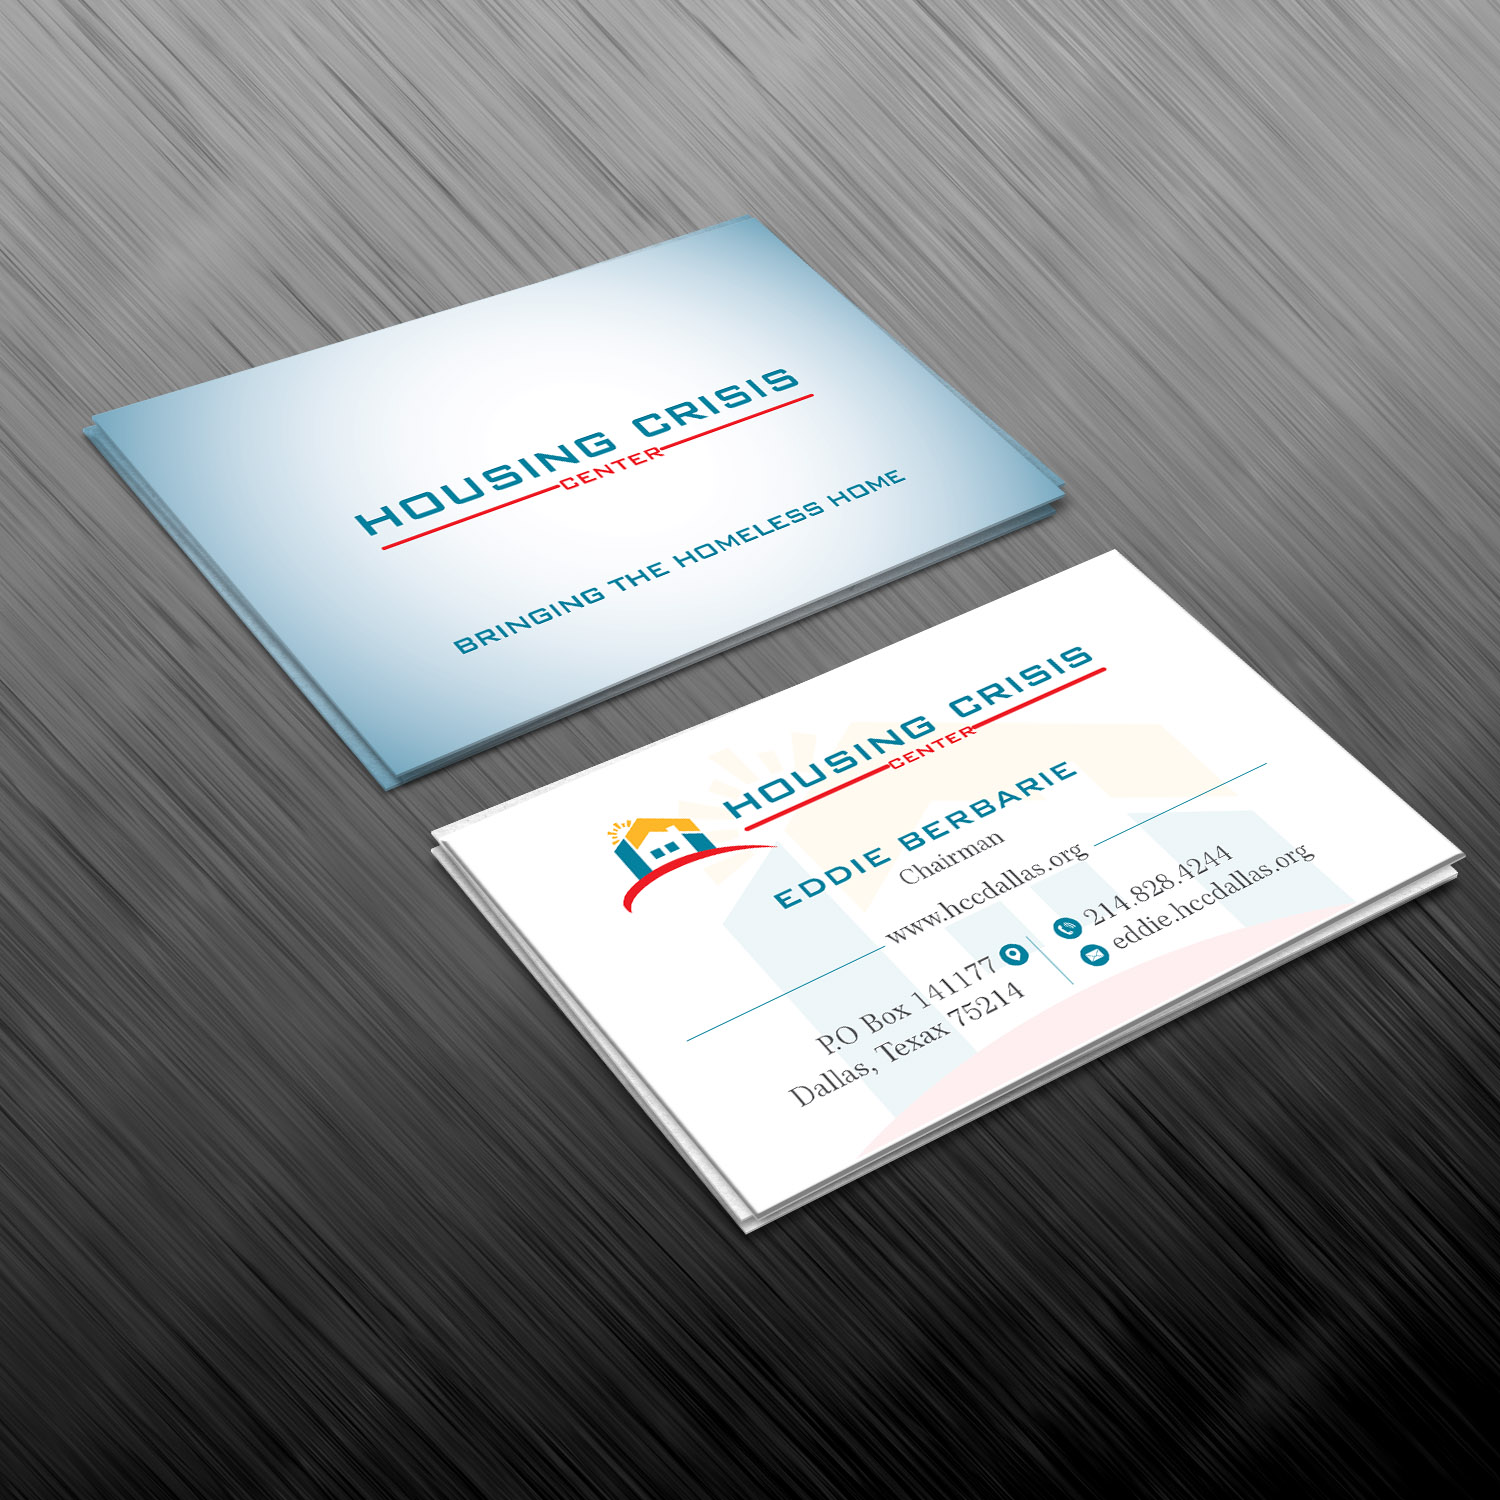 business card design by creative jiniya for housing crisis center design 17986143 - Non Profit Business Cards